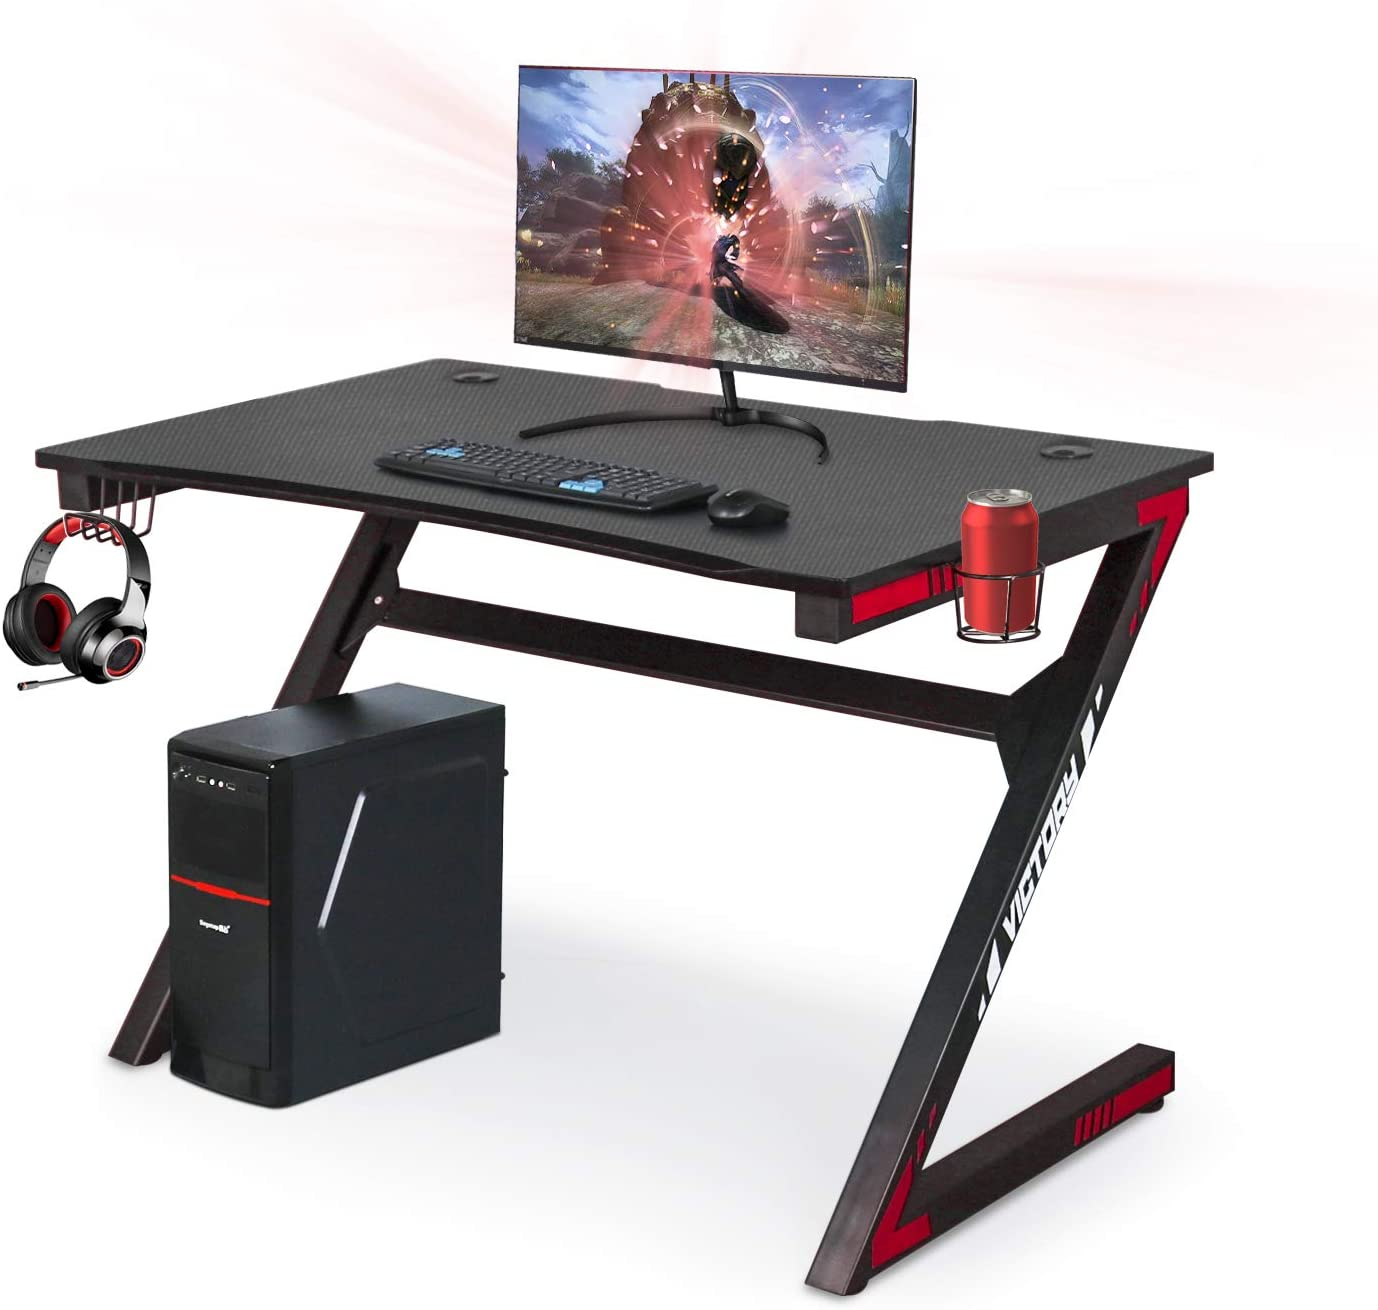 Gaming Computer Desk 46 Inch Large Gaming Table Z Shape Black Racing Table Student Desk with& Headphone Hook for Kids Adults Home Office Bedroom Computer Workstation